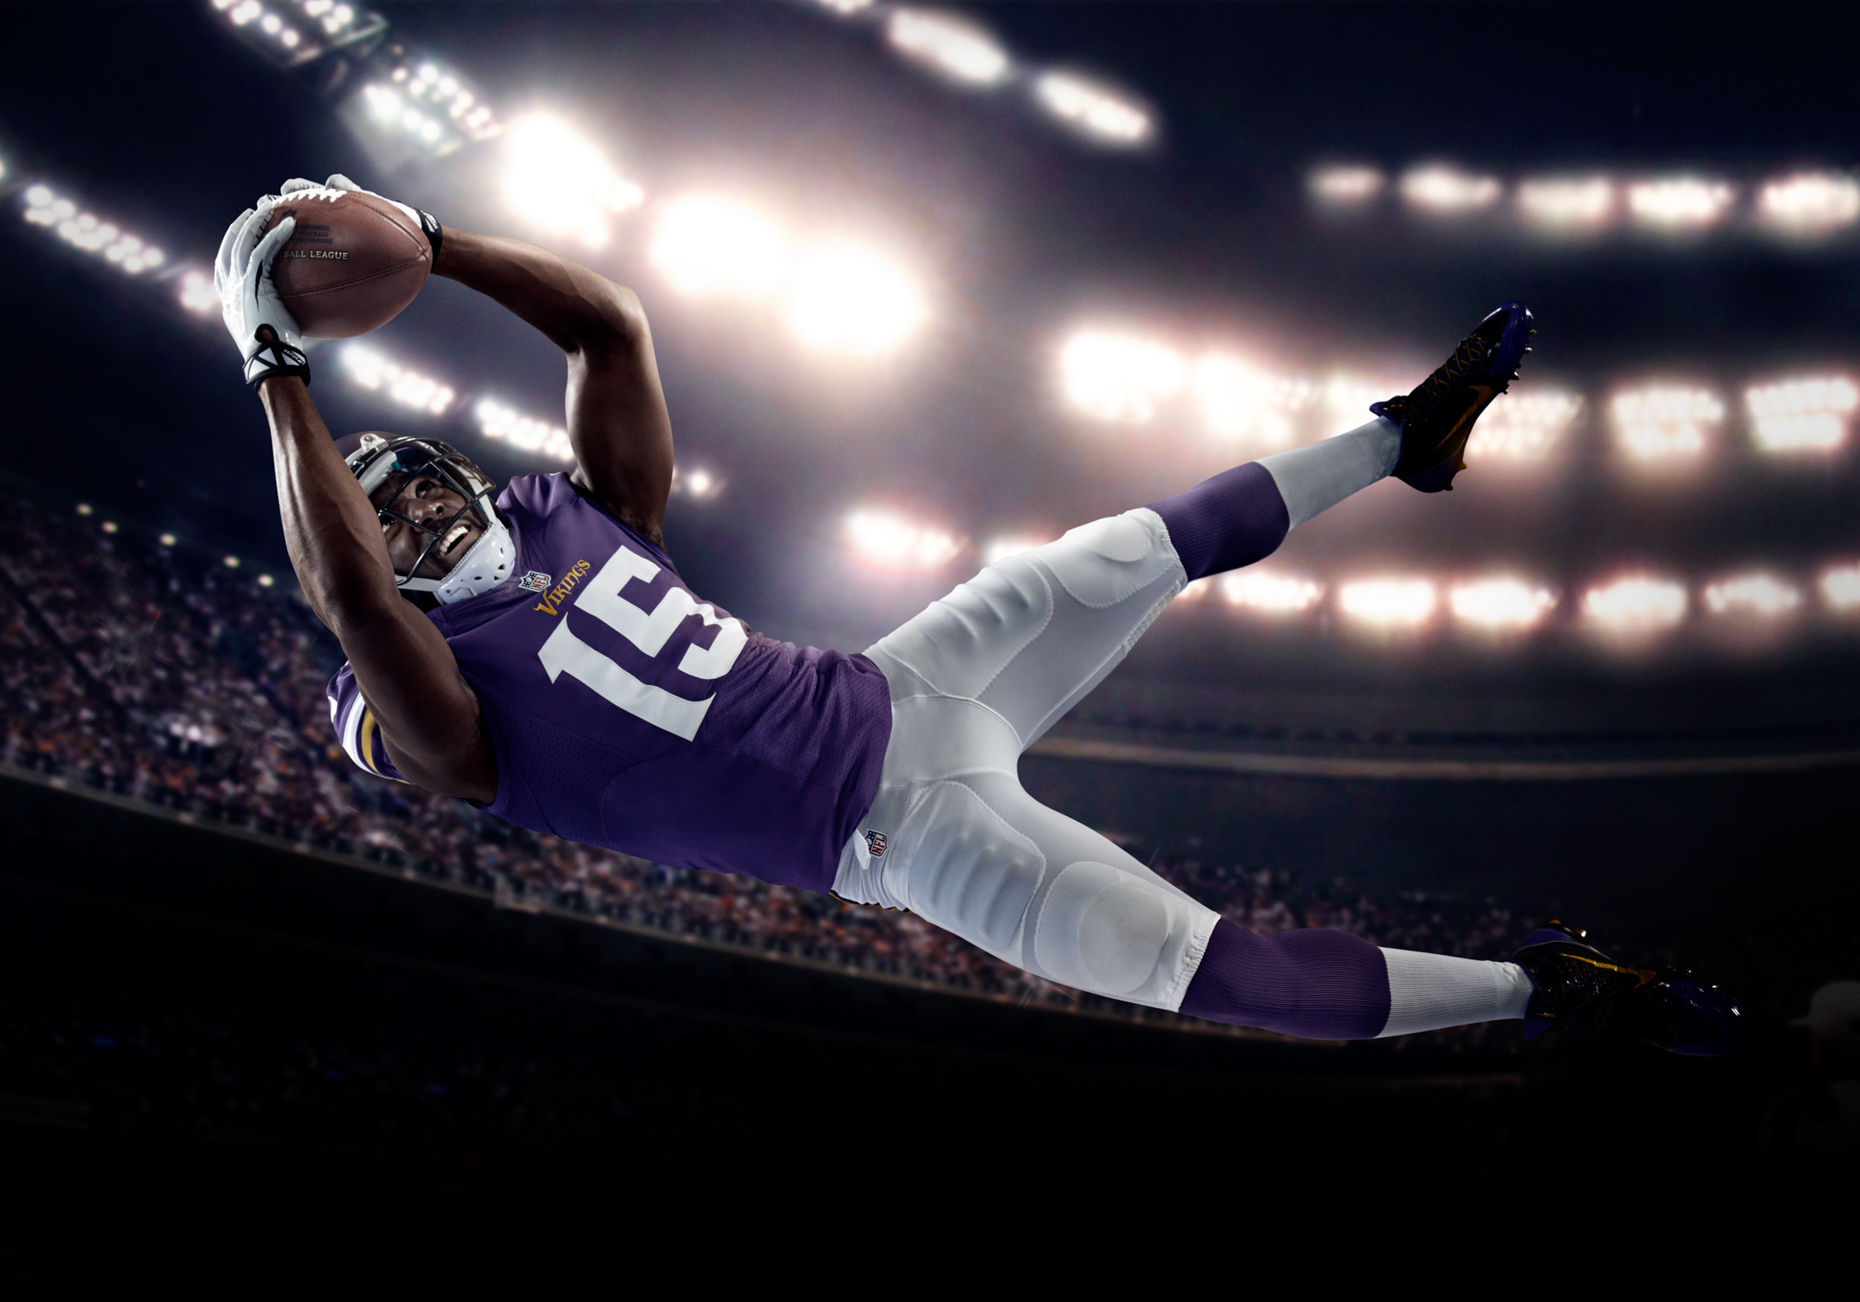 Wide receiver Greg Jennings for the Minnesota Vikings NFL